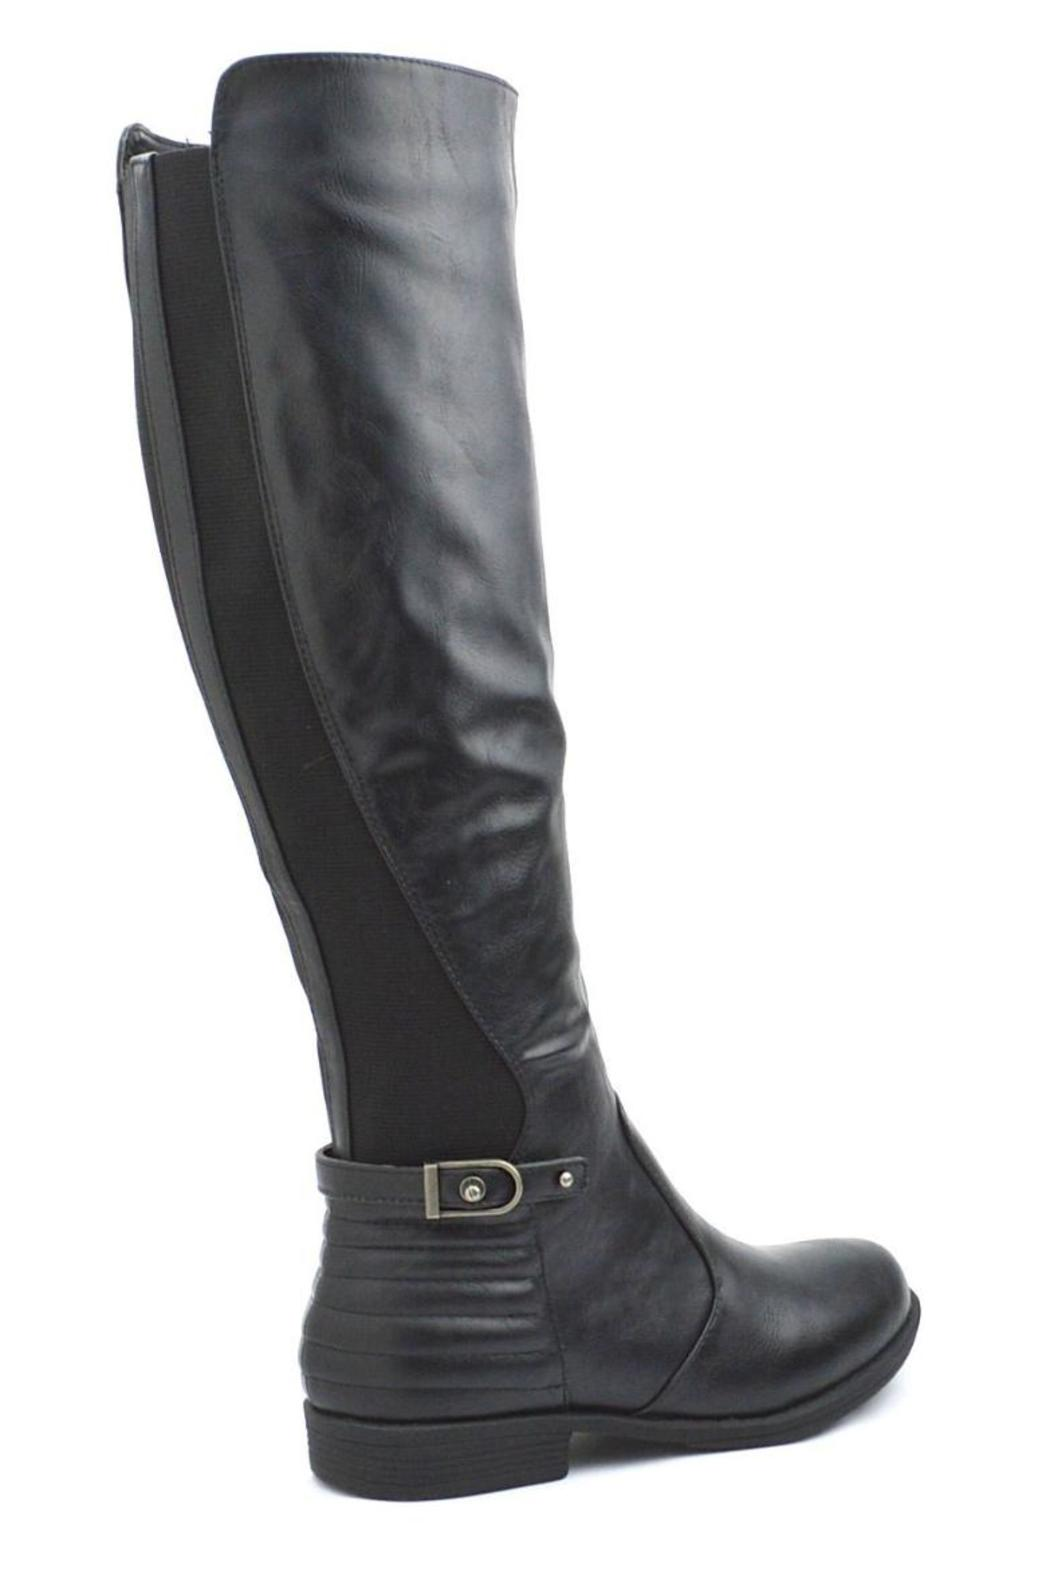 Bamboo Brand Shoes Boots